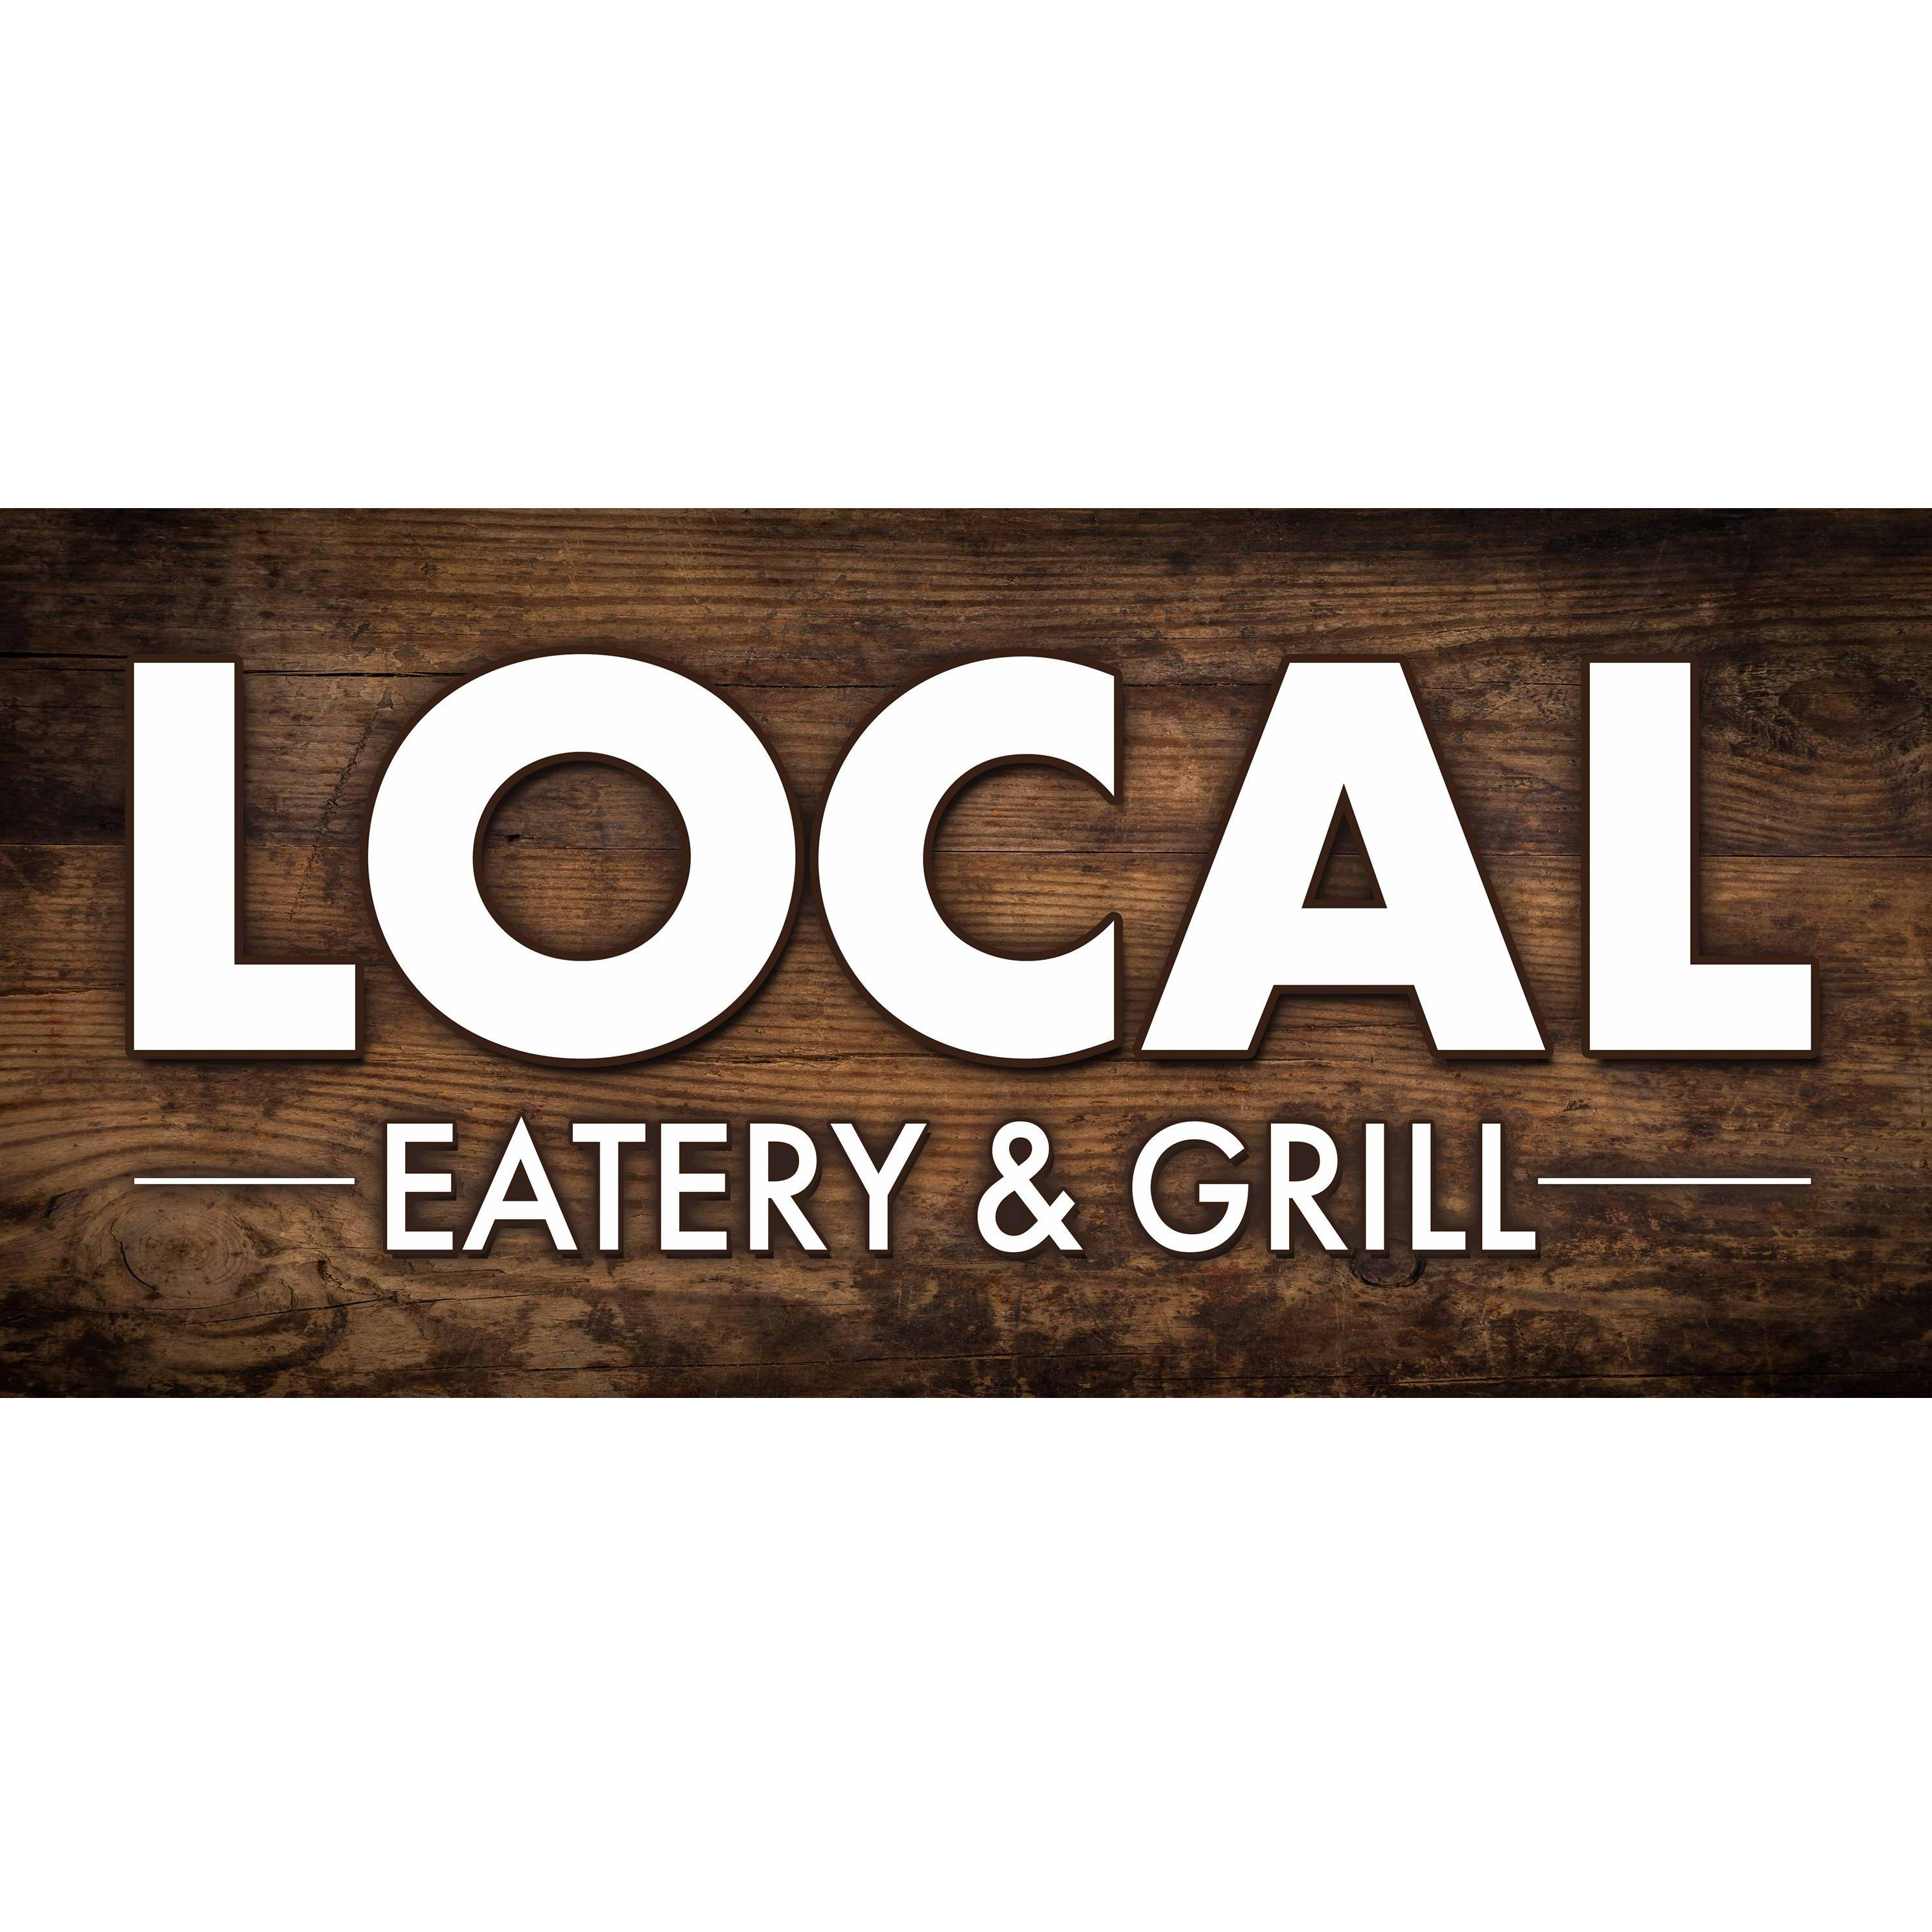 Local Eatery and Grill